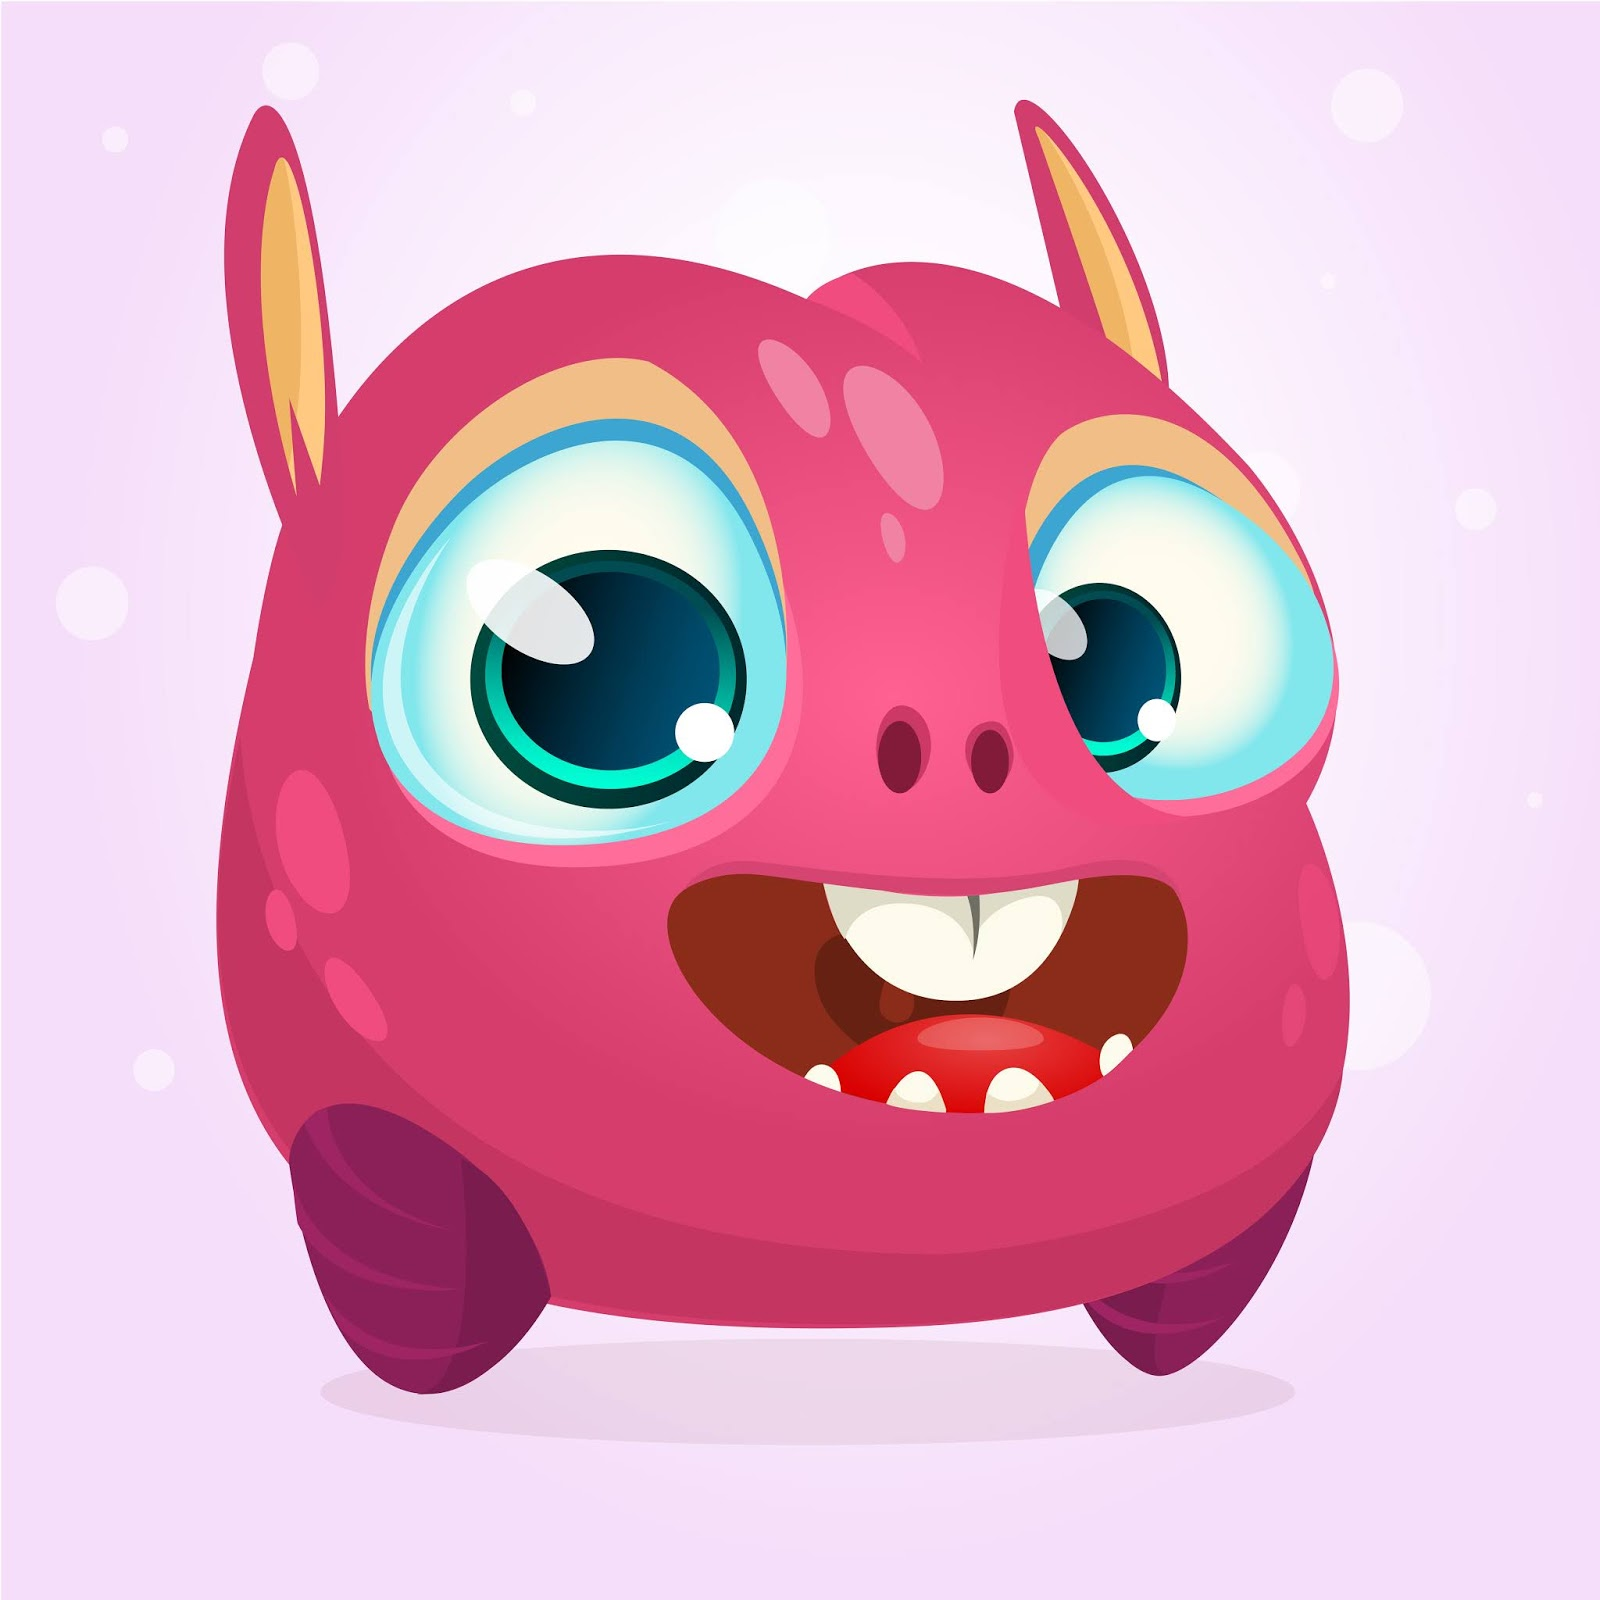 Cartoon Funny Monster Illustration Style Free Download Vector CDR, AI, EPS and PNG Formats